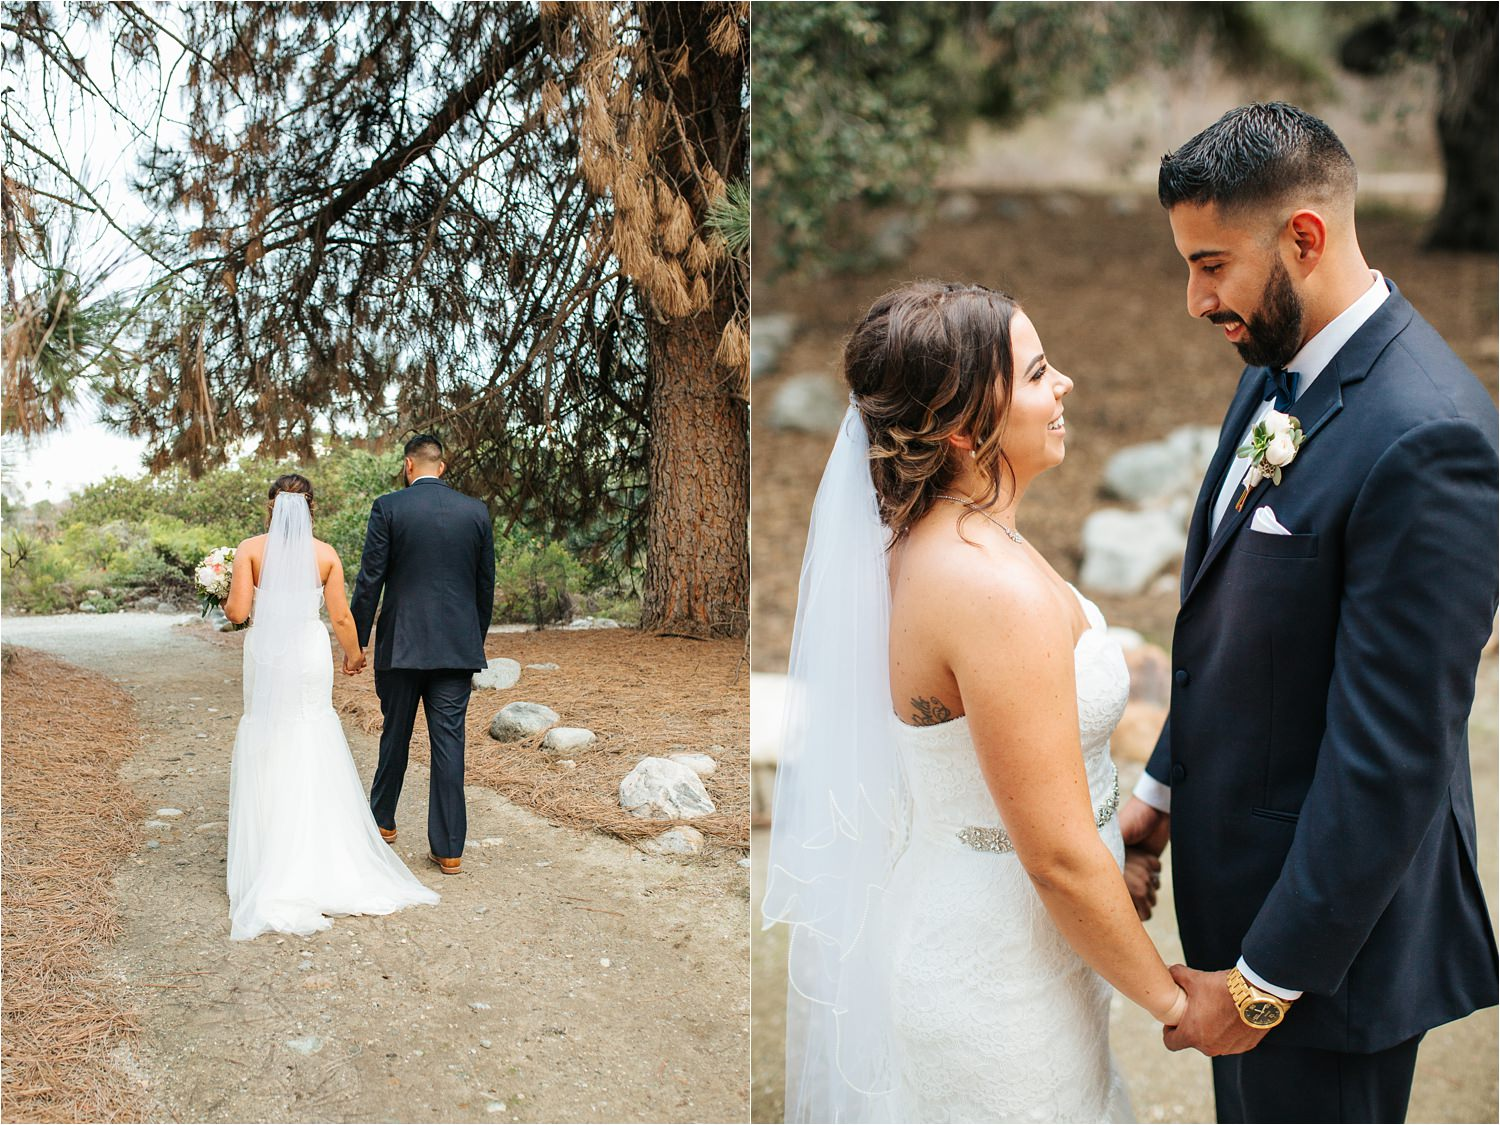 Romantic Fall Wedding in Southern California - http://brittneyhannonphotography.com